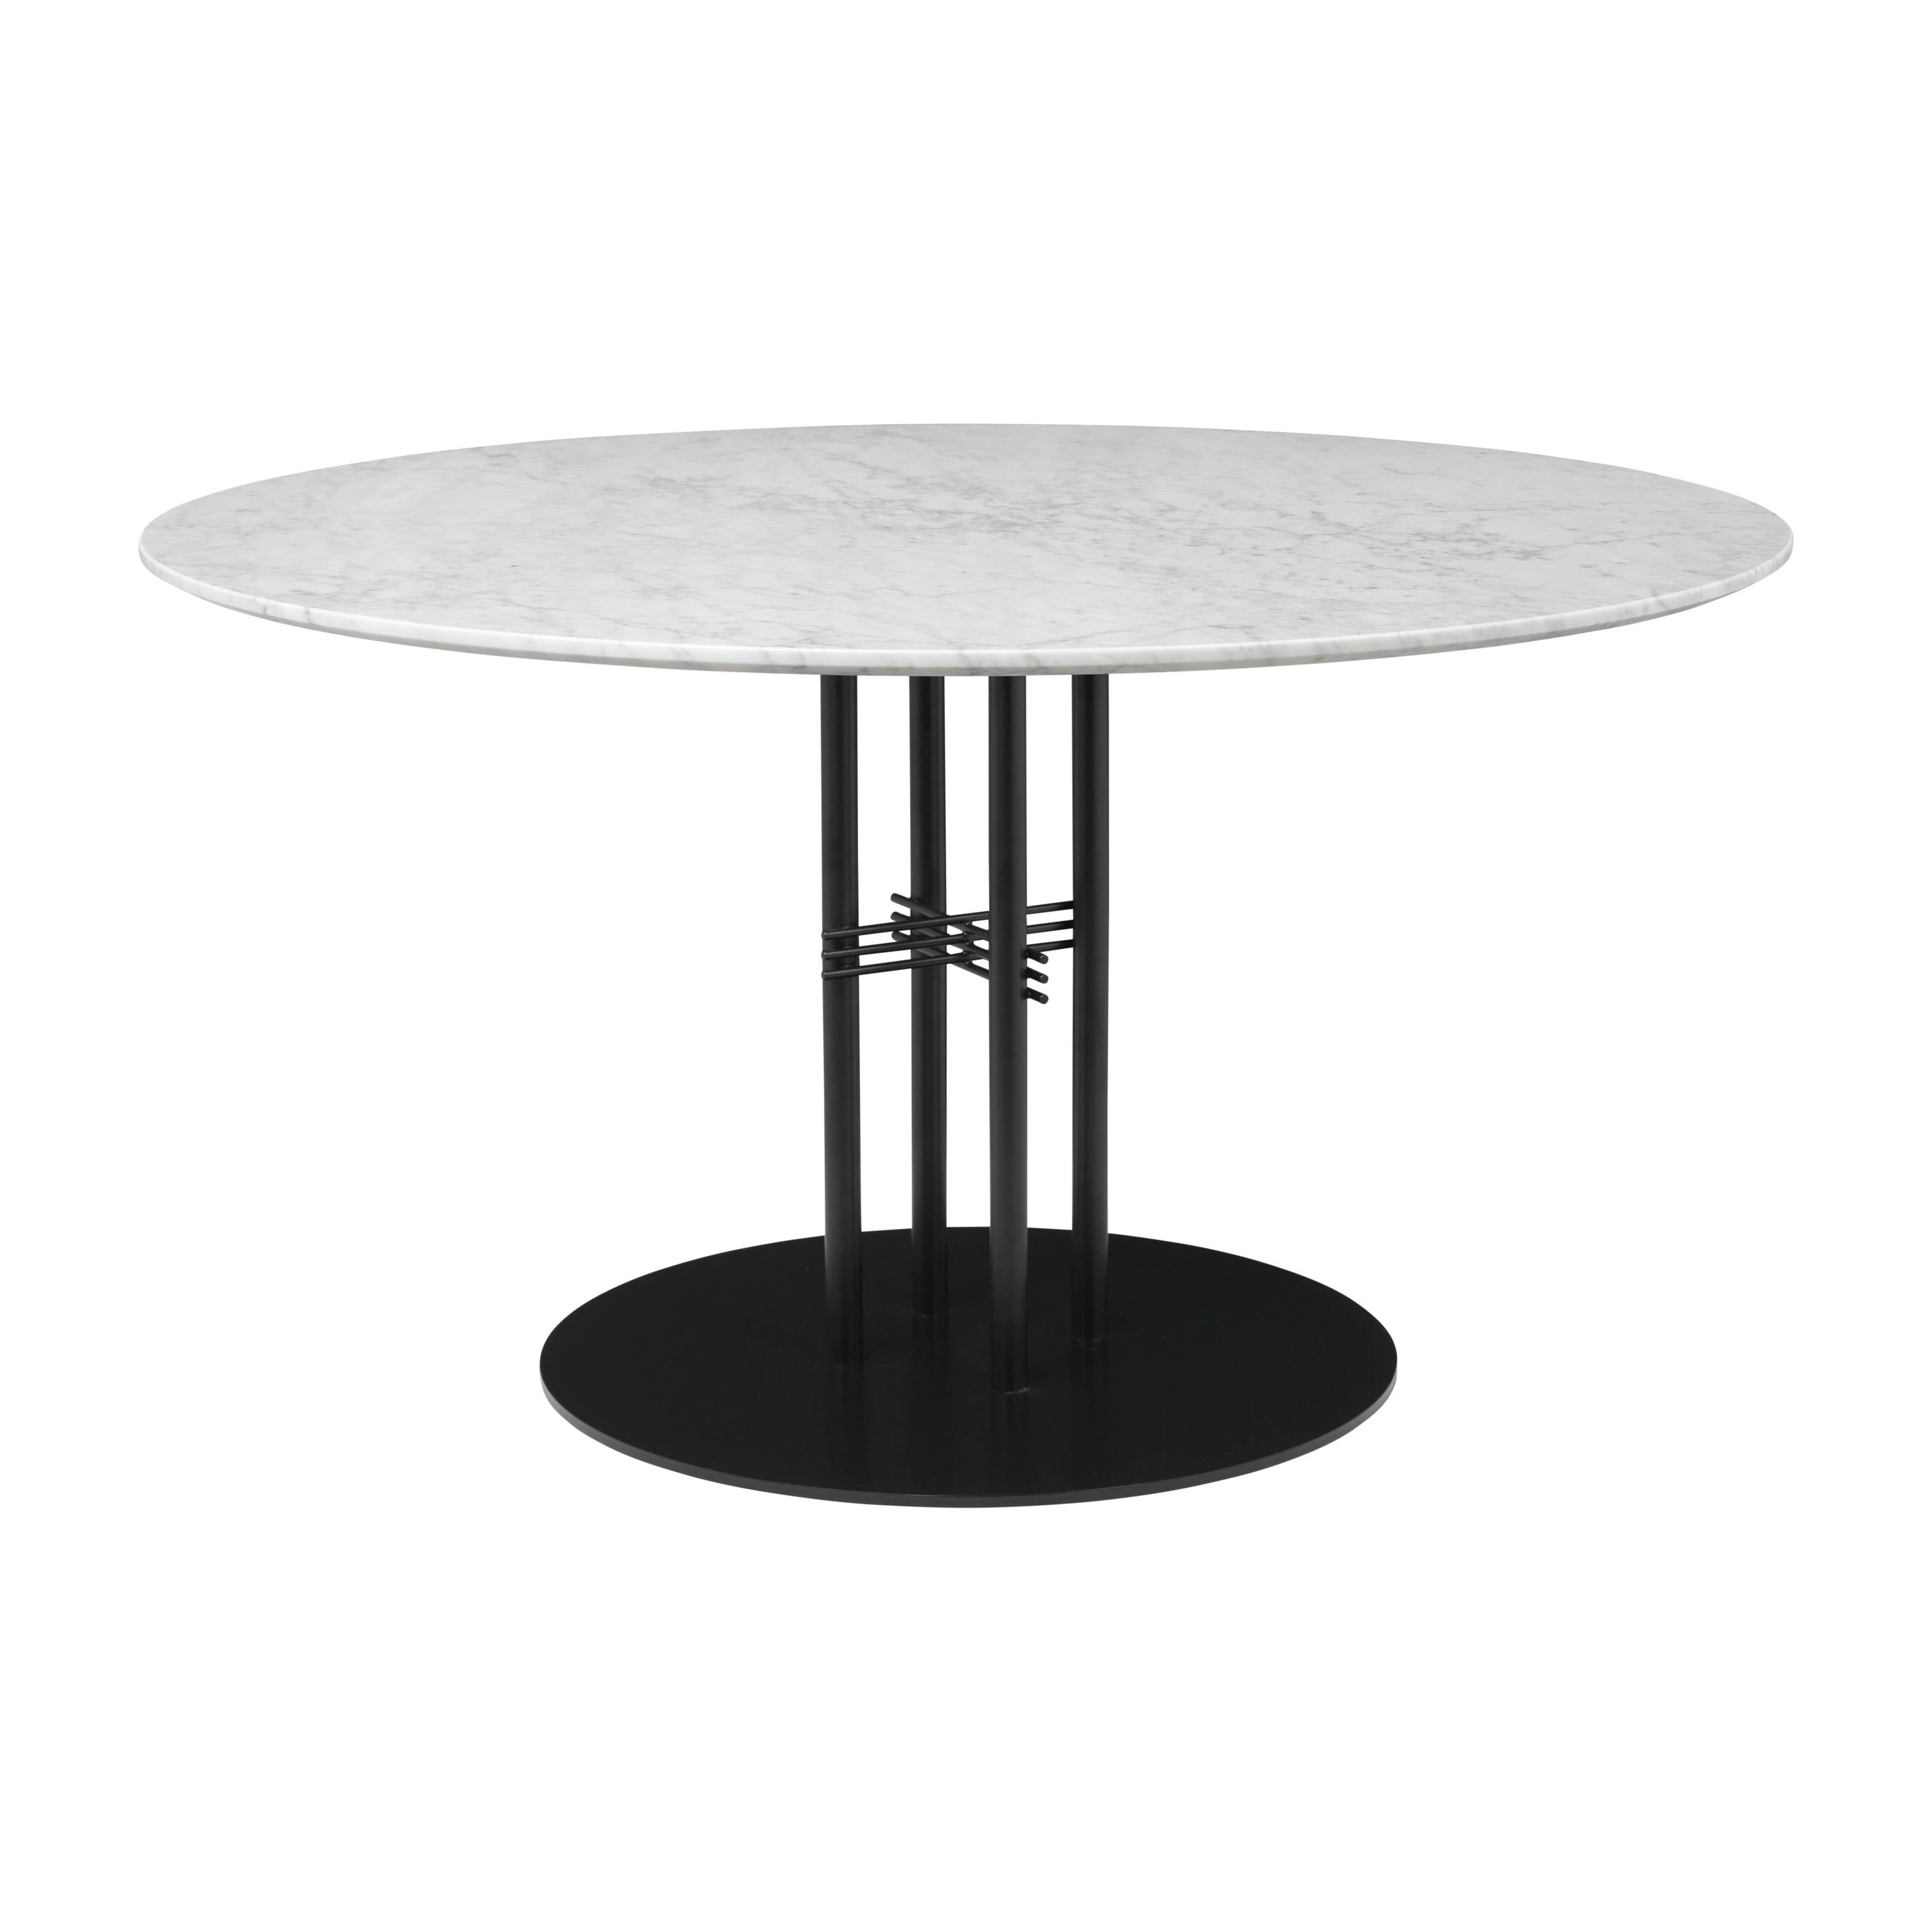 TS Column Dining Table: Large + Black Base + White Carrara Marble